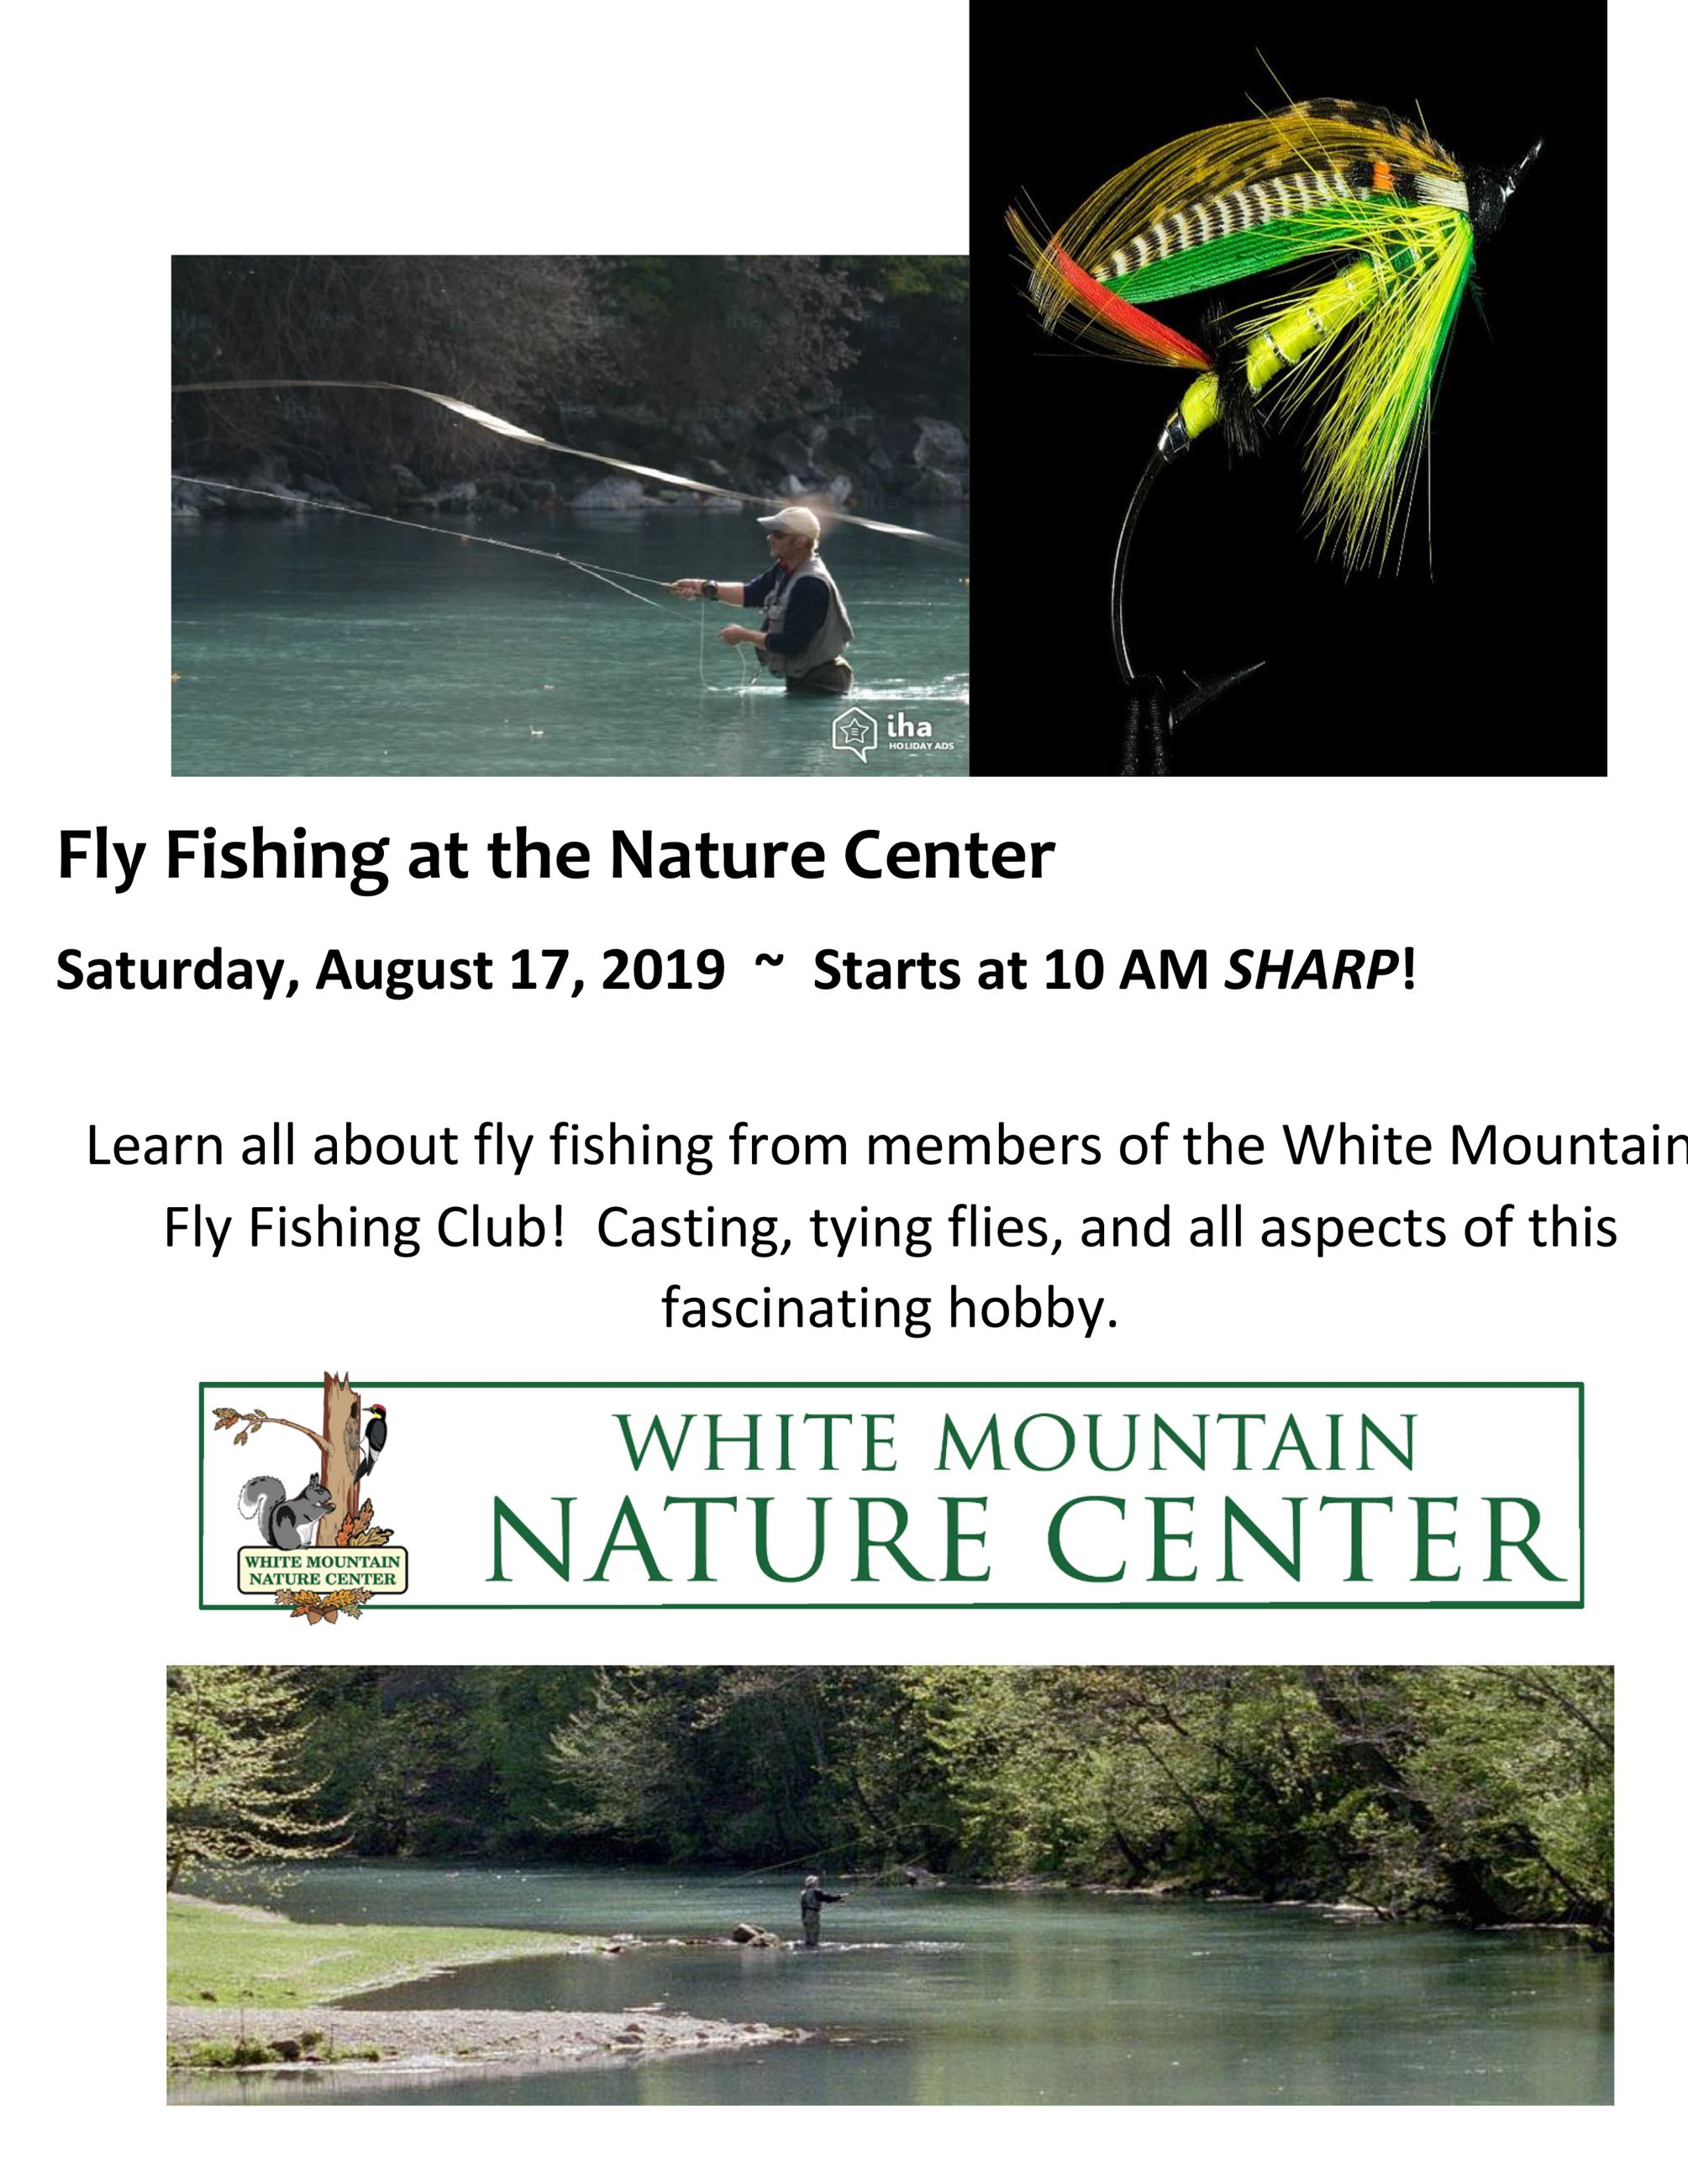 081719 Fly Fishing Nature Center